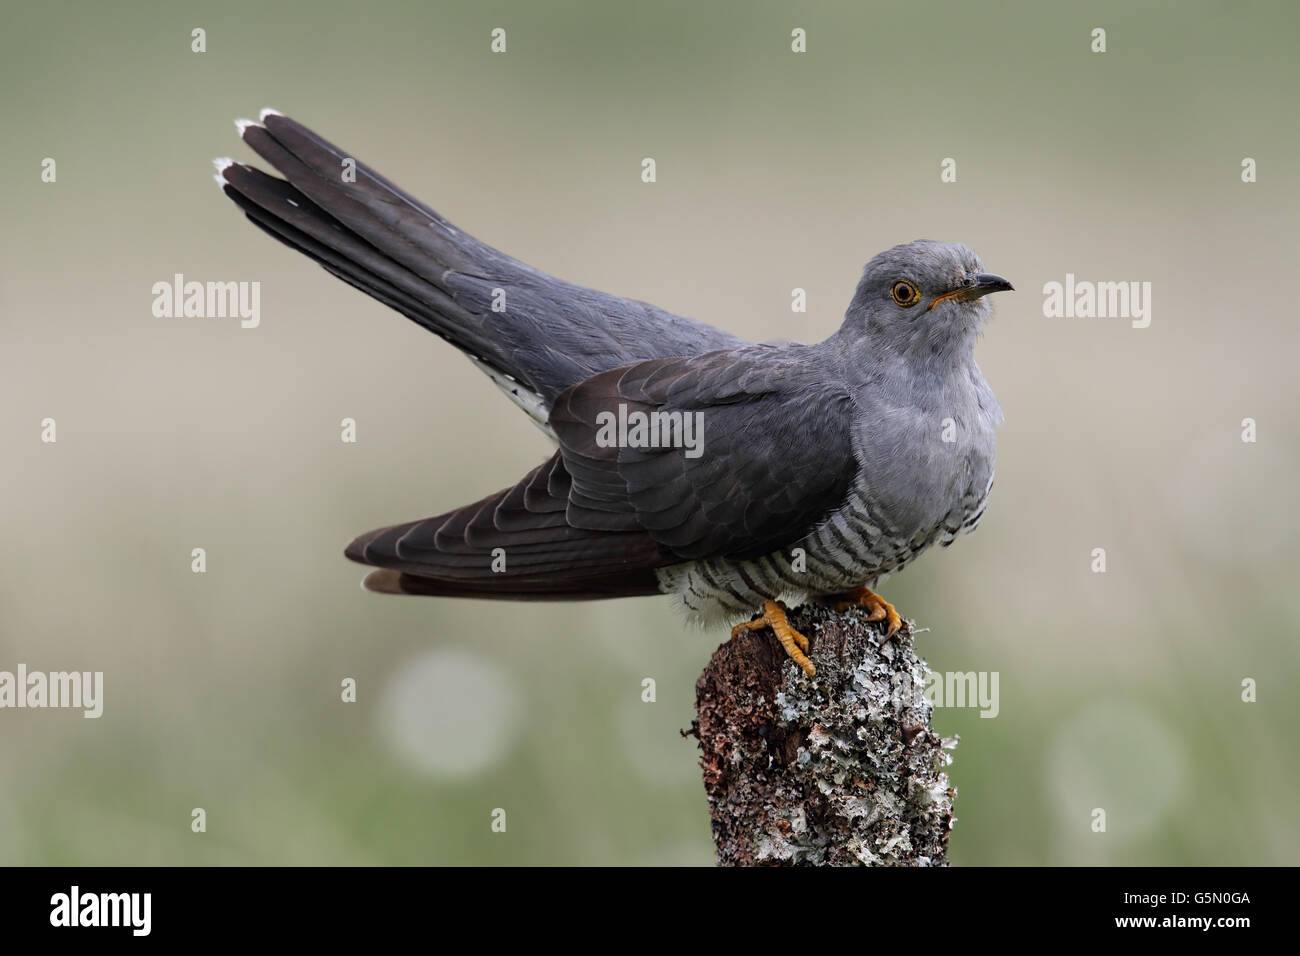 Wild adult Male Cuckoo (Cuculus canorus) perched. Image taken in Scotland, UK. - Stock Image